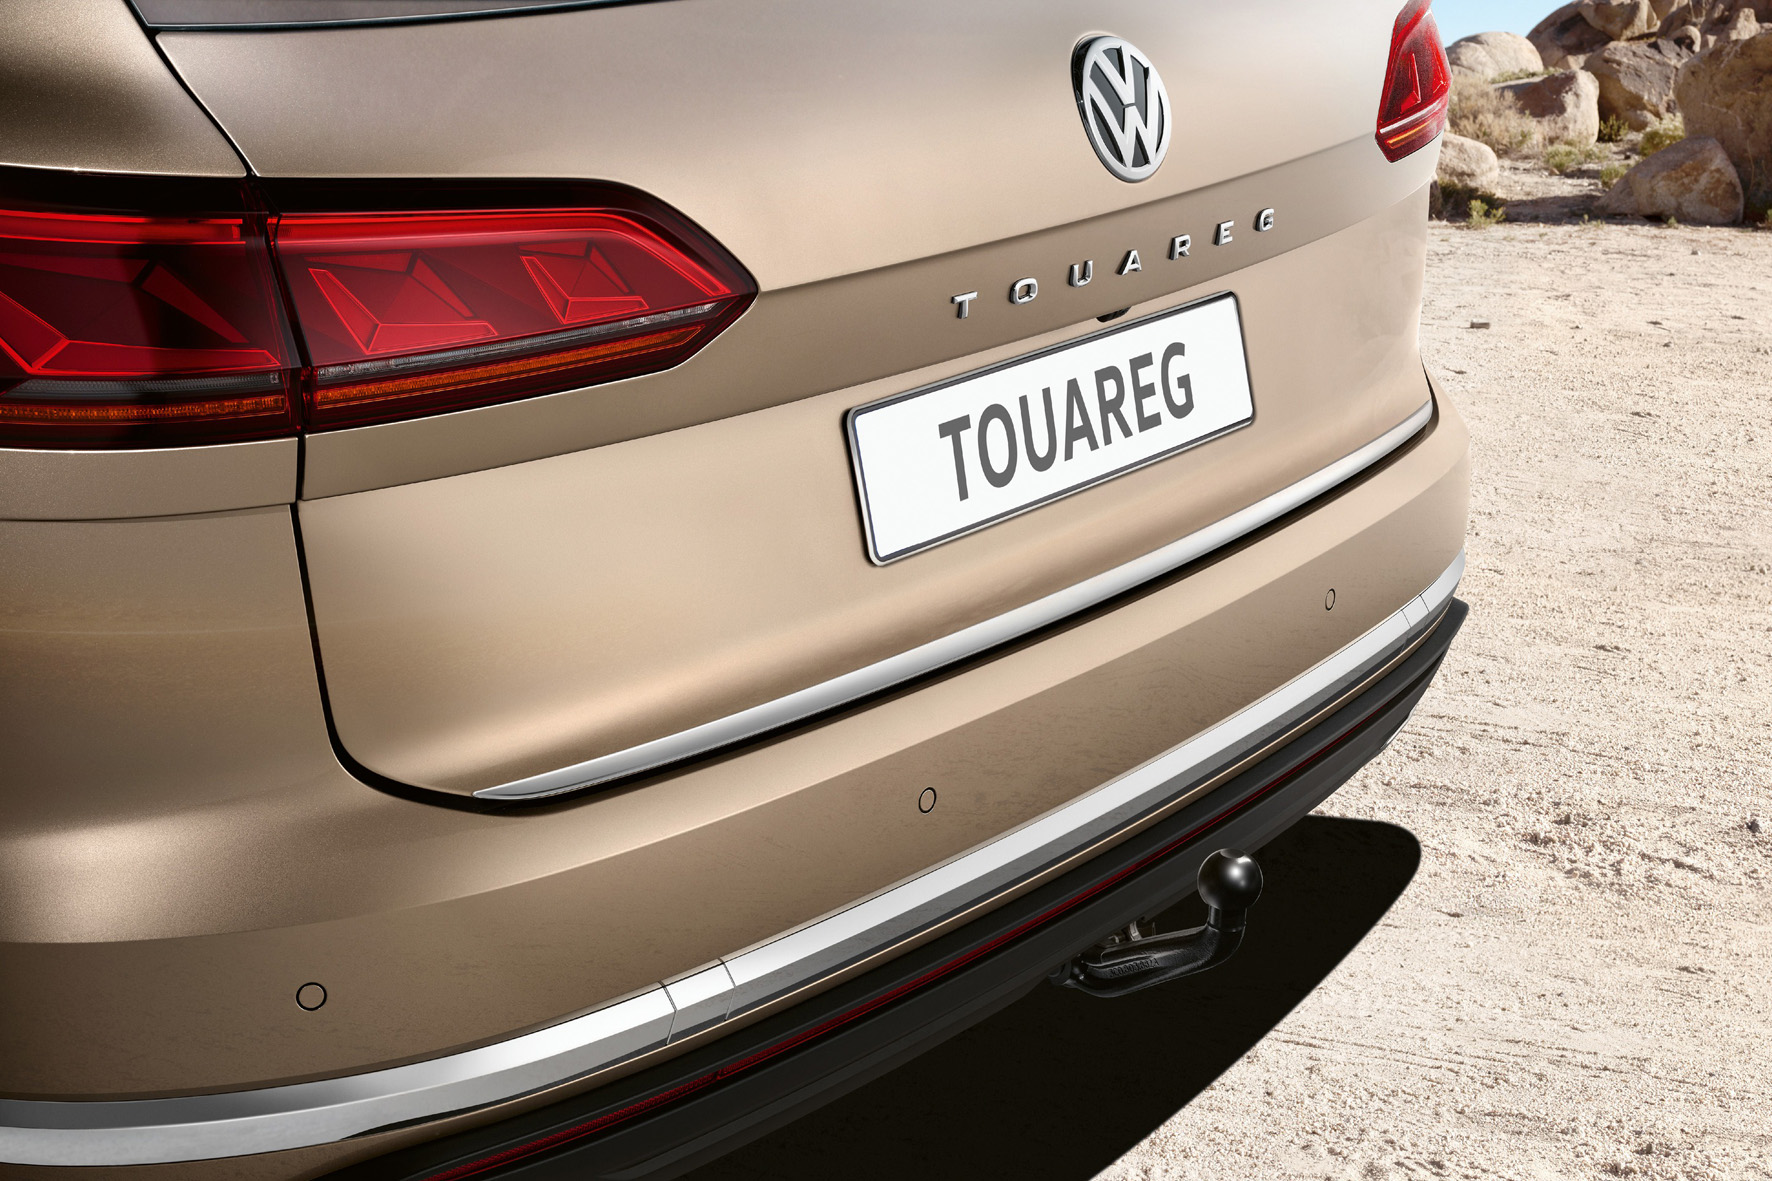 VW Touareg Trailer hitch